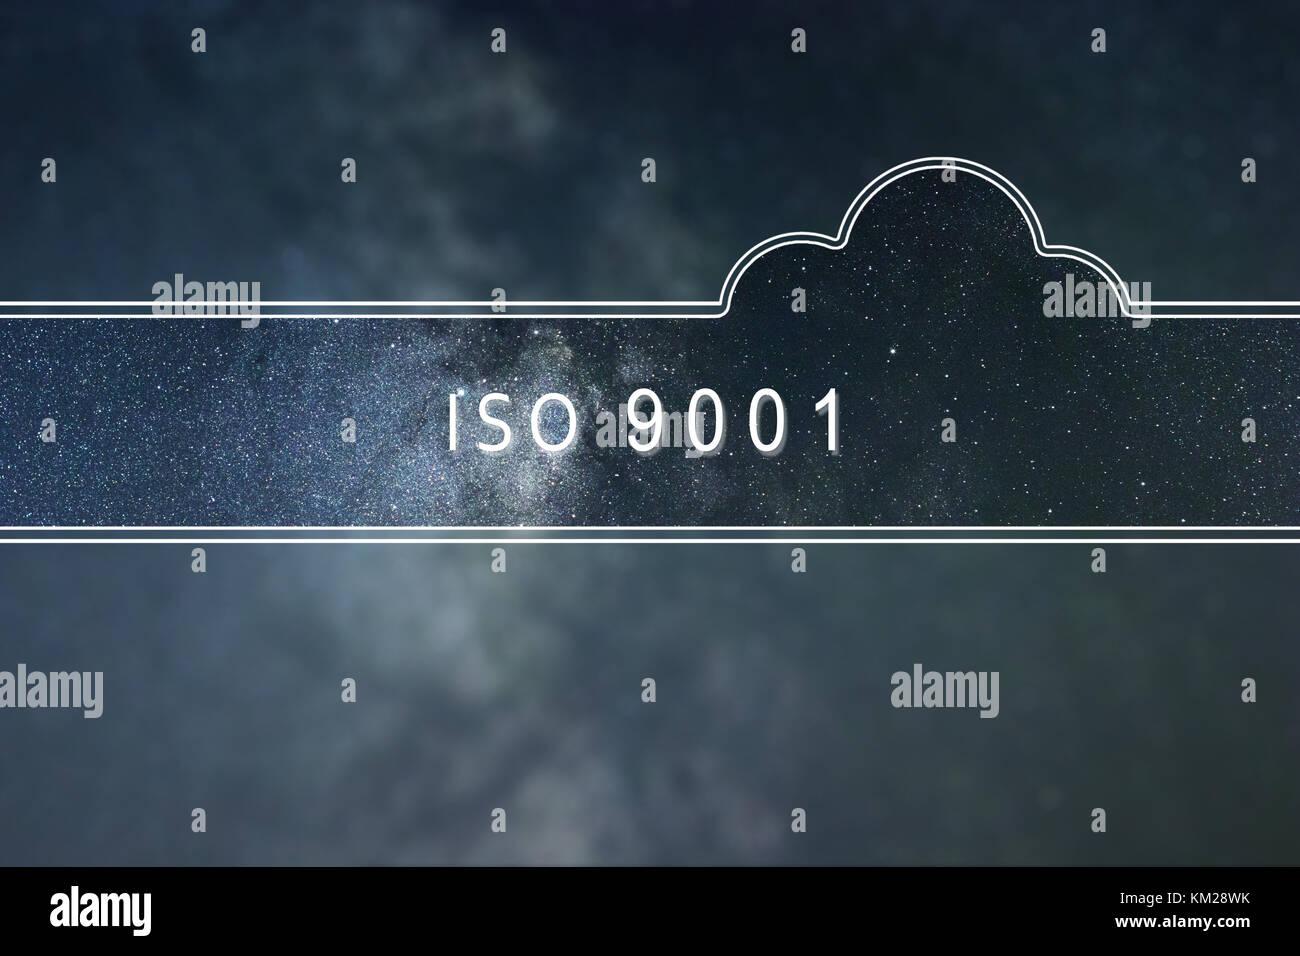 ISO 9001 word cloud Concept. Space background. - Stock Image